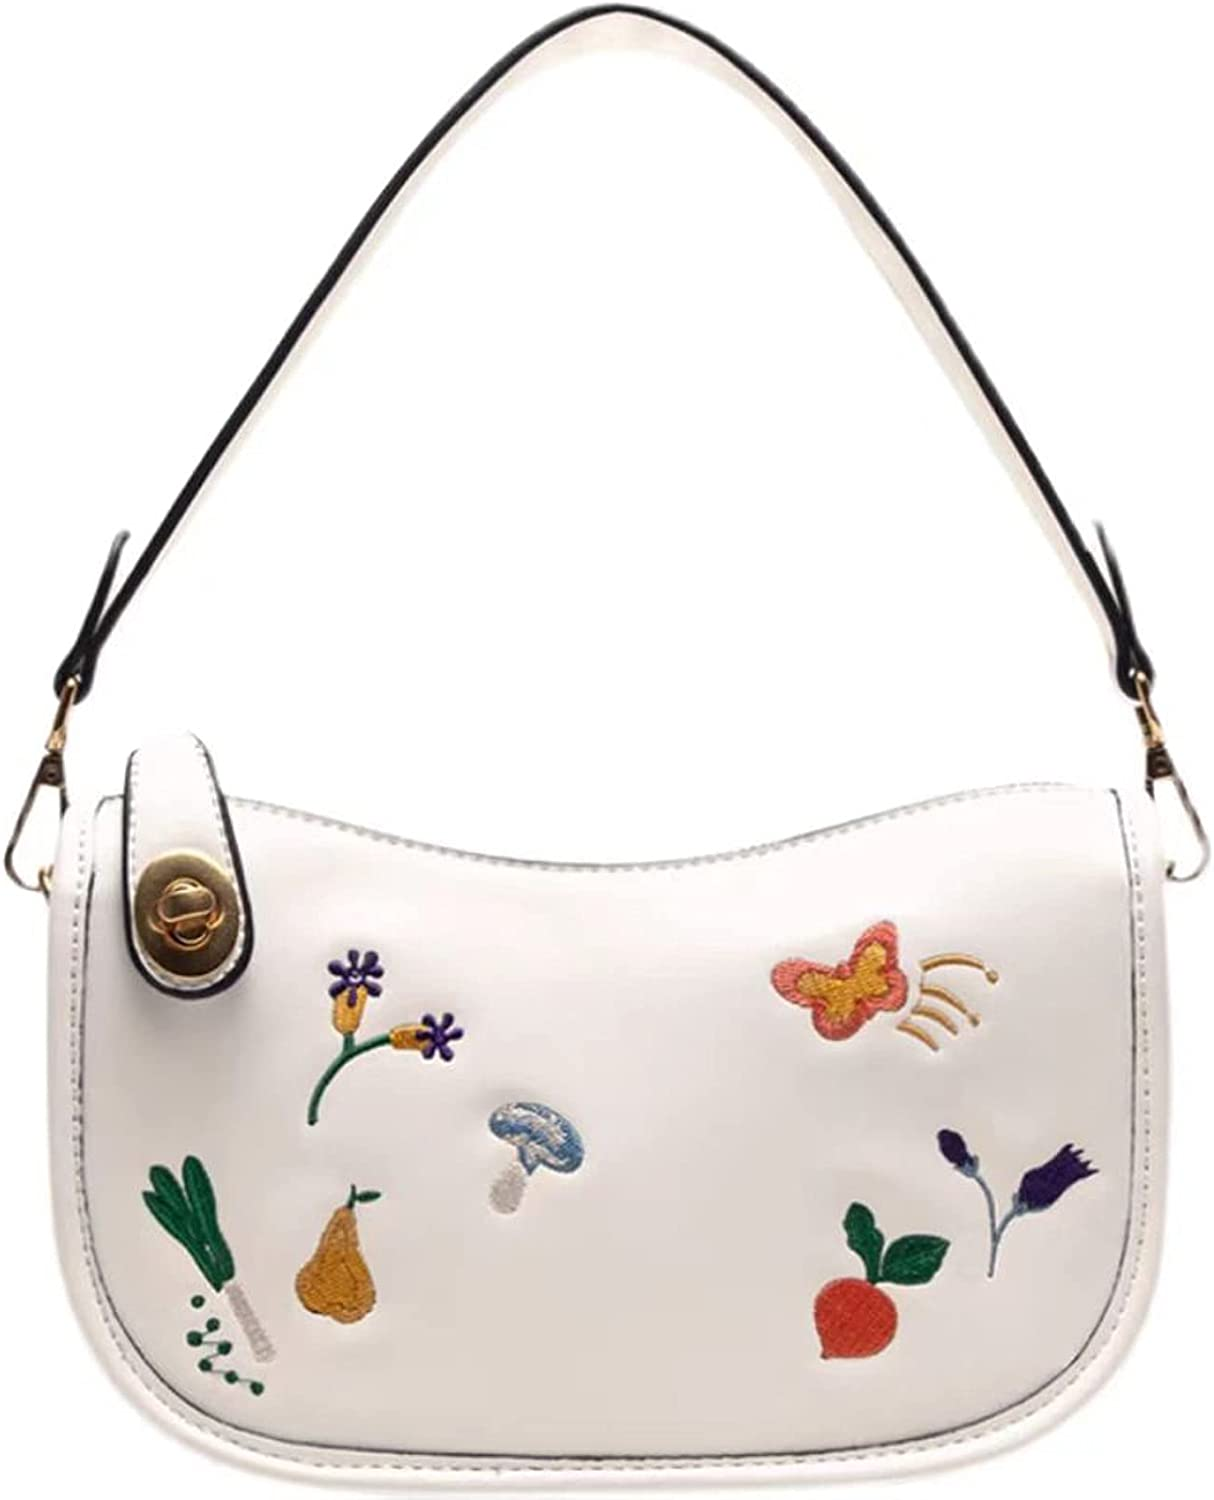 Purses Free shipping on posting reviews And Handbags For Women Ladies Embroidery Graff JWPavilion Ranking TOP4